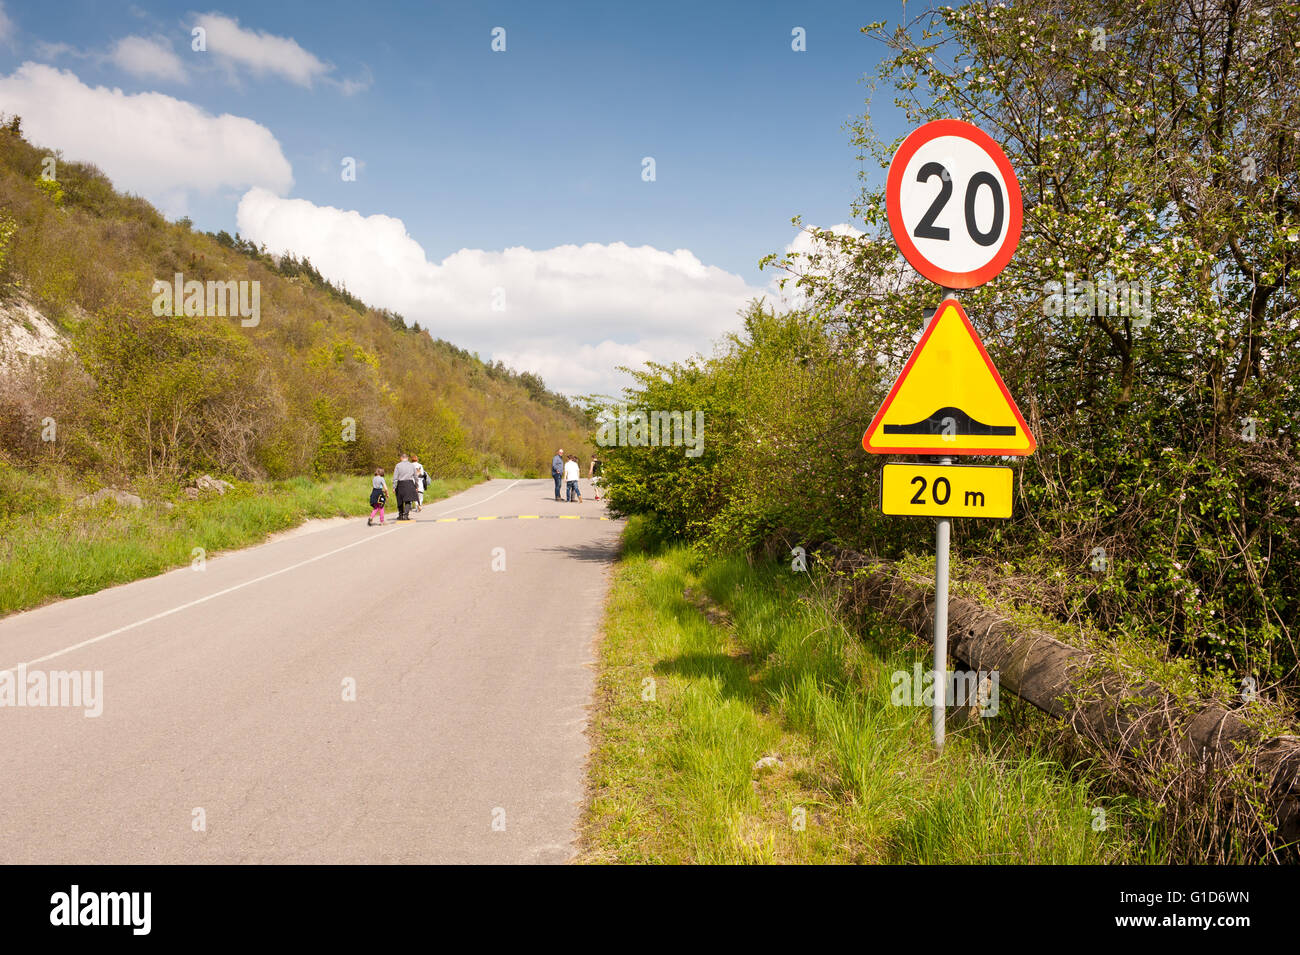 Speed bump and maximum limit of 20, road sign on the wayside in Janowiec village, speed humps traffic calming for - Stock Image